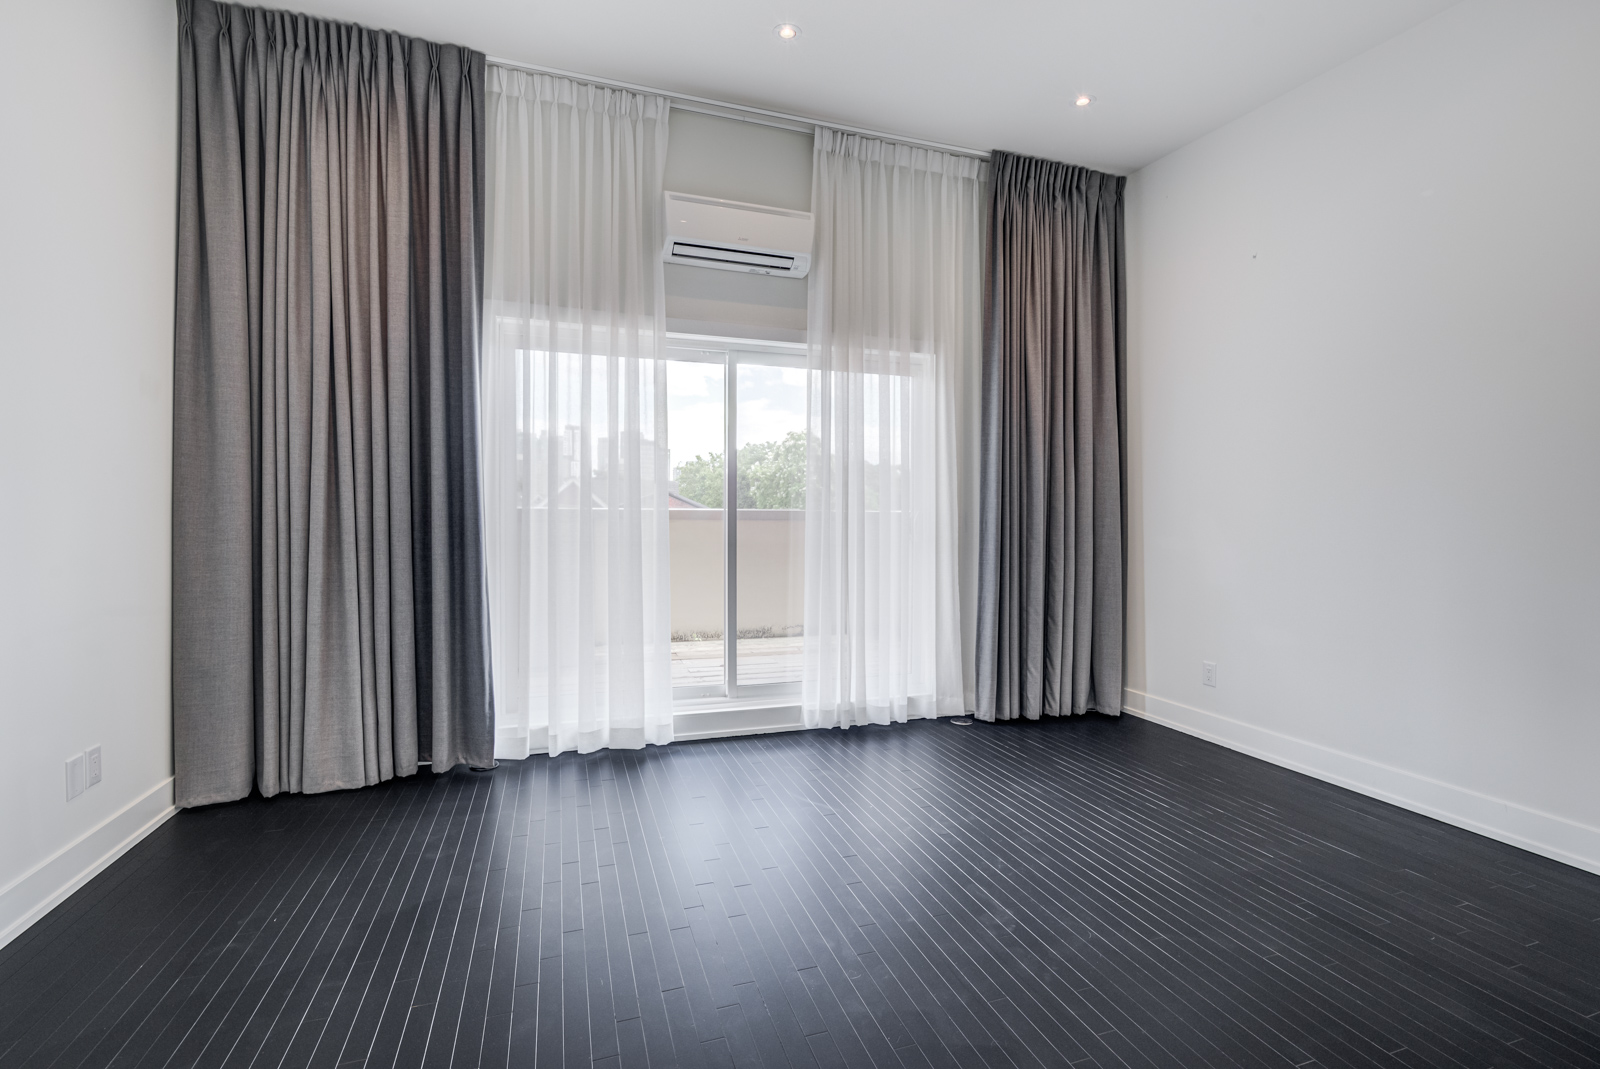 Empty master bedroom with black floors and white and gray curtains